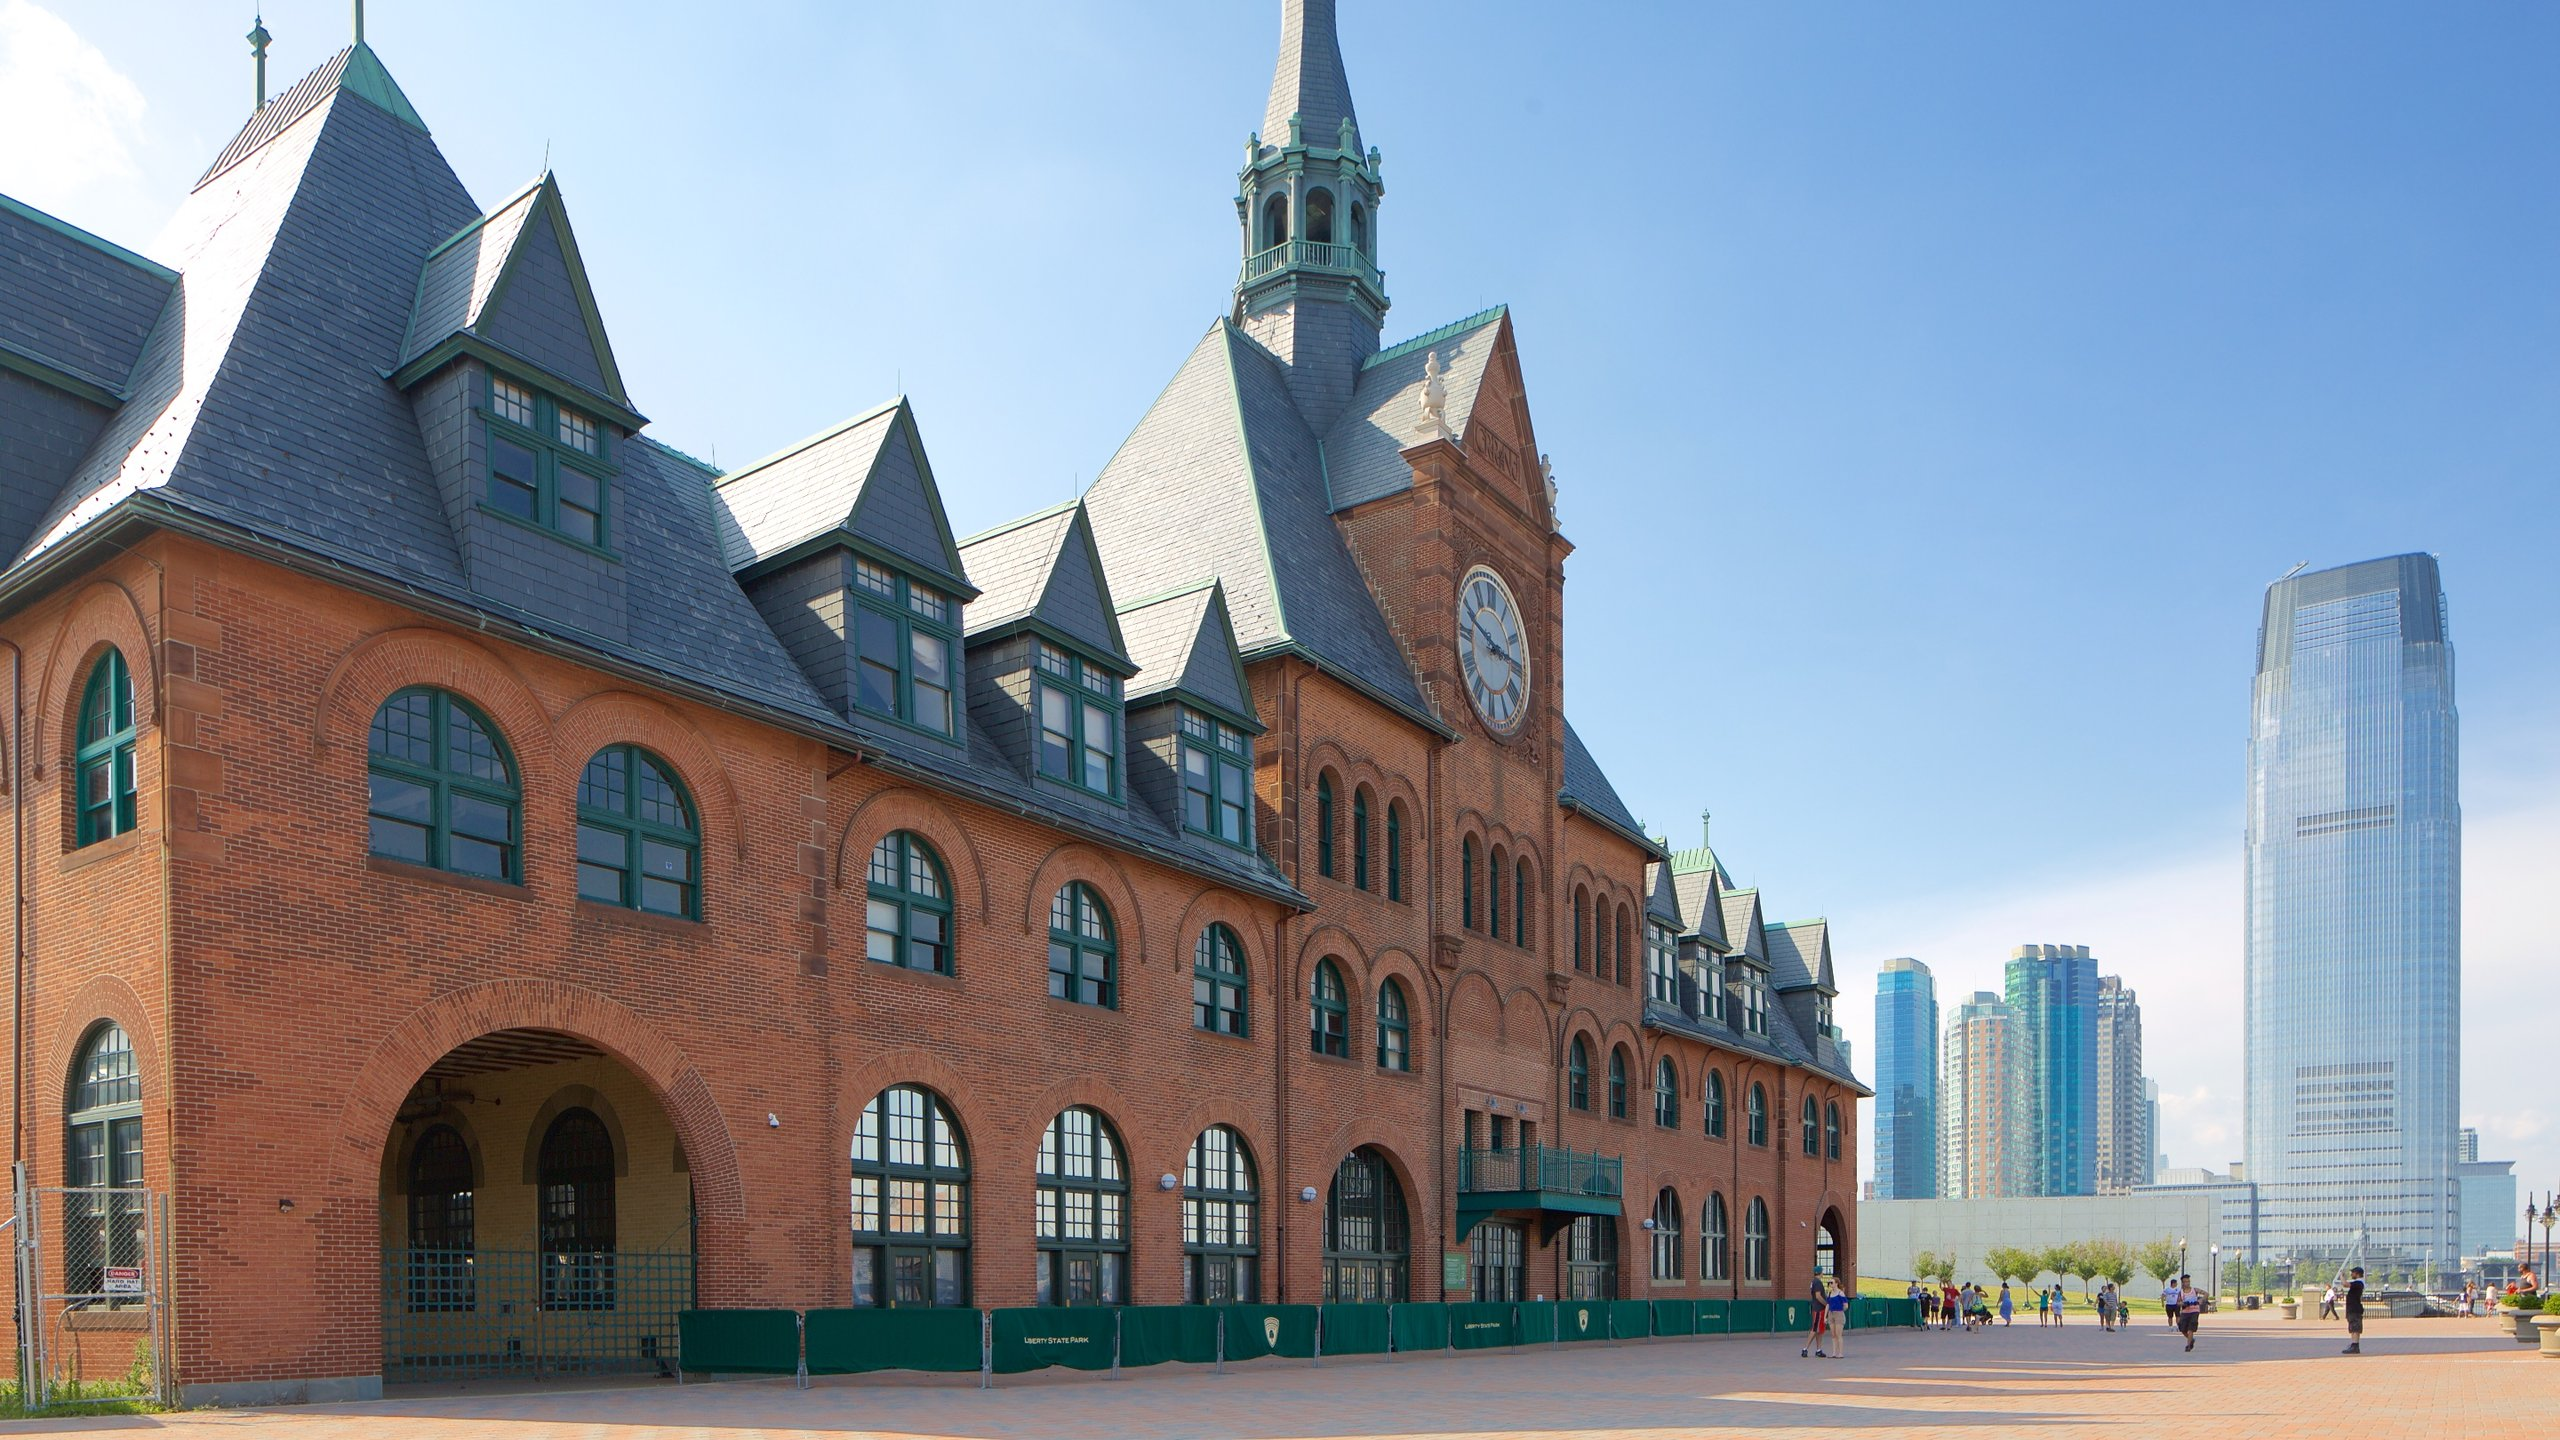 Central Railroad of New Jersey Terminal, Jersey City, New Jersey, United States of America